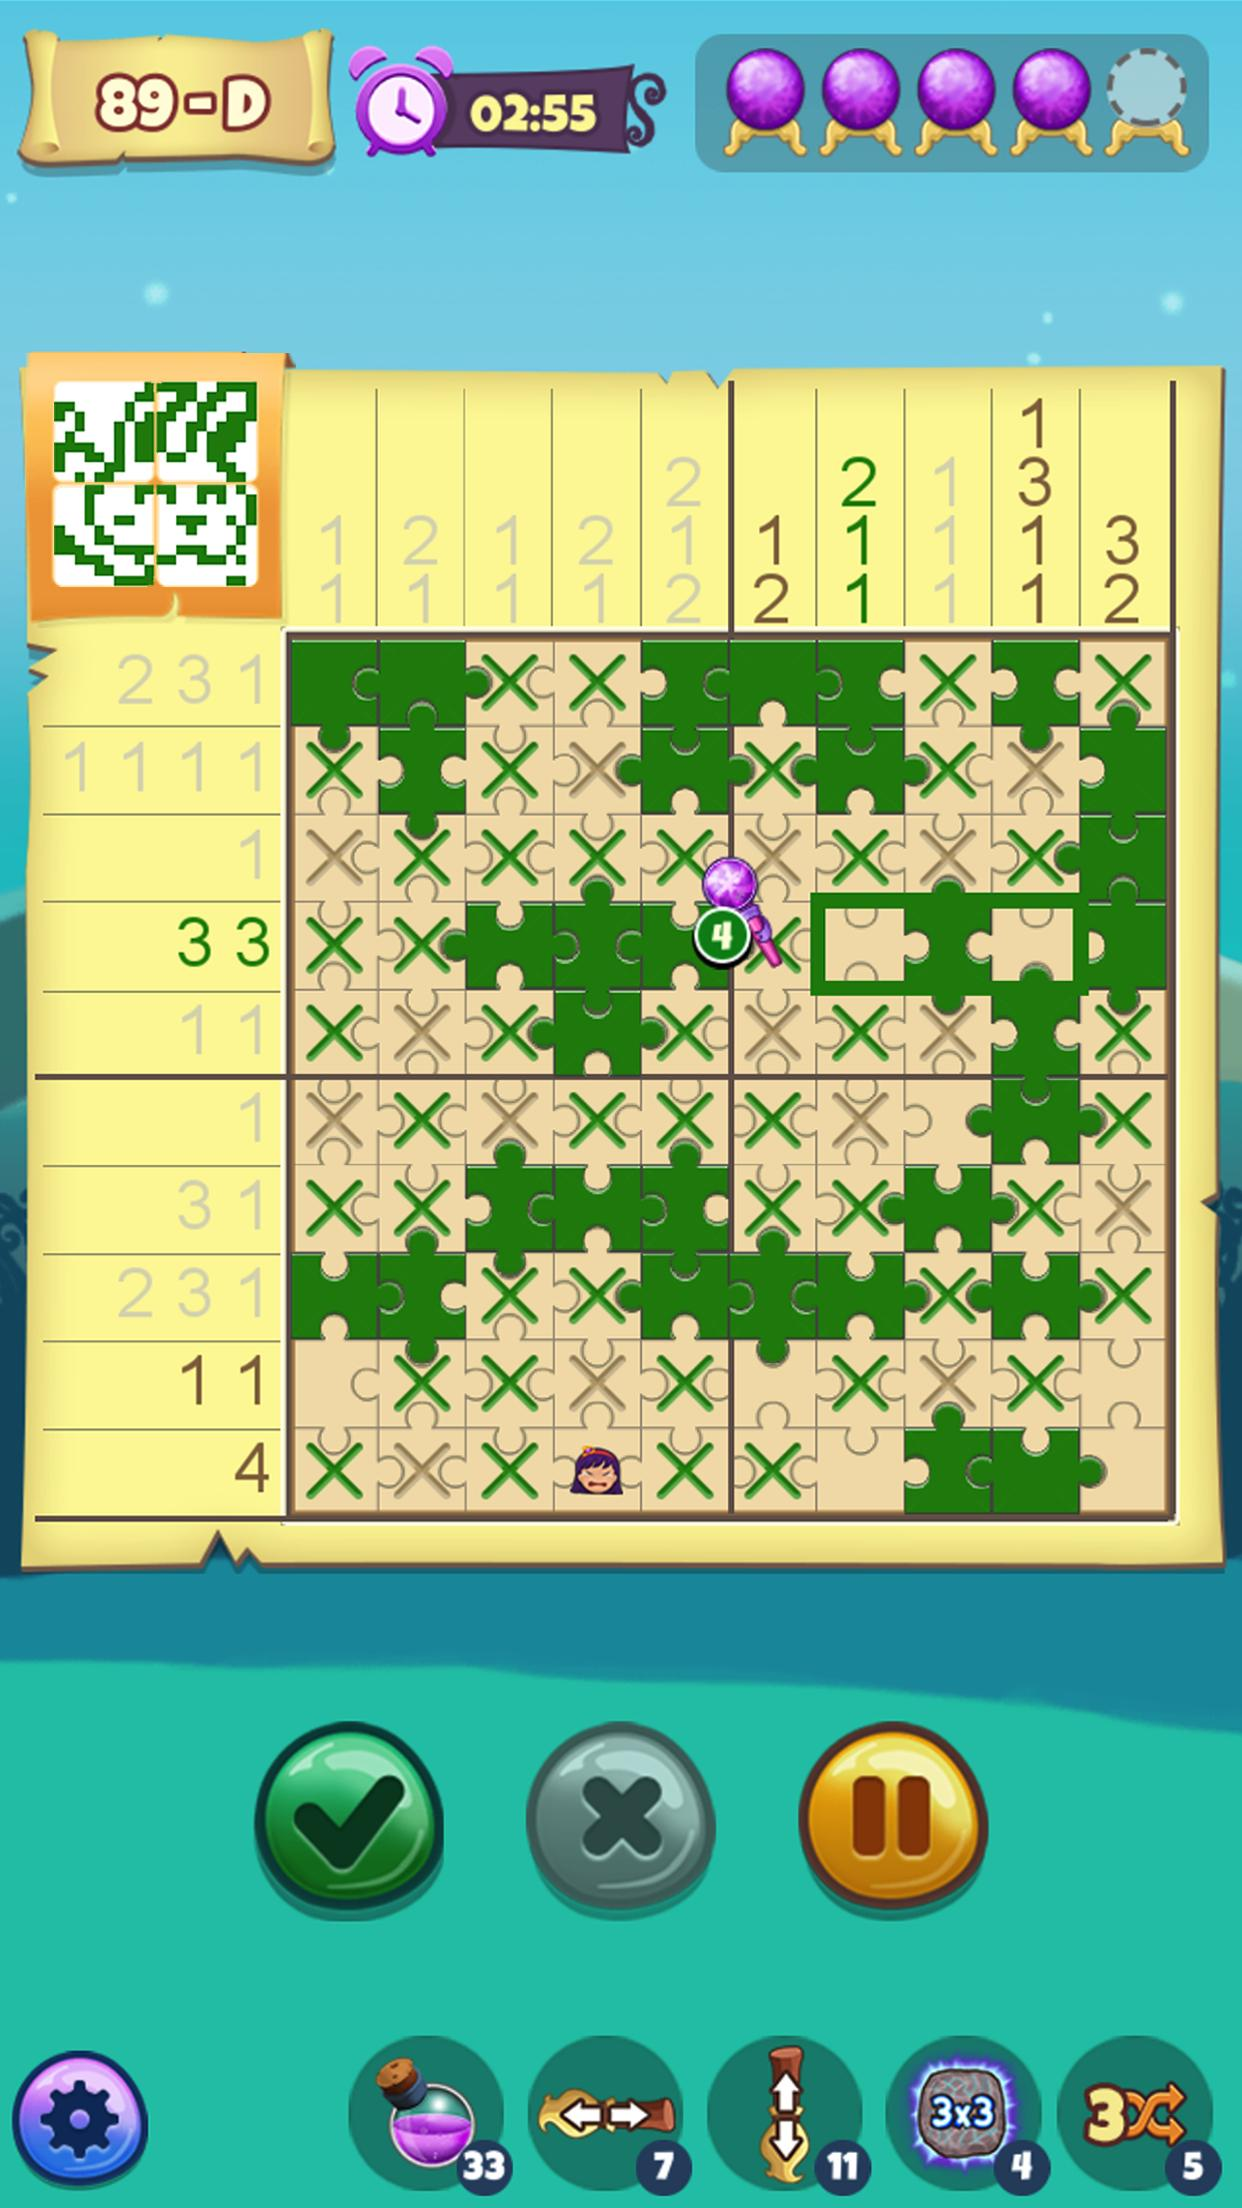 The Mystic Puzzland - Griddlers & Nonogram Puzzles 1.0.26 Screenshot 6